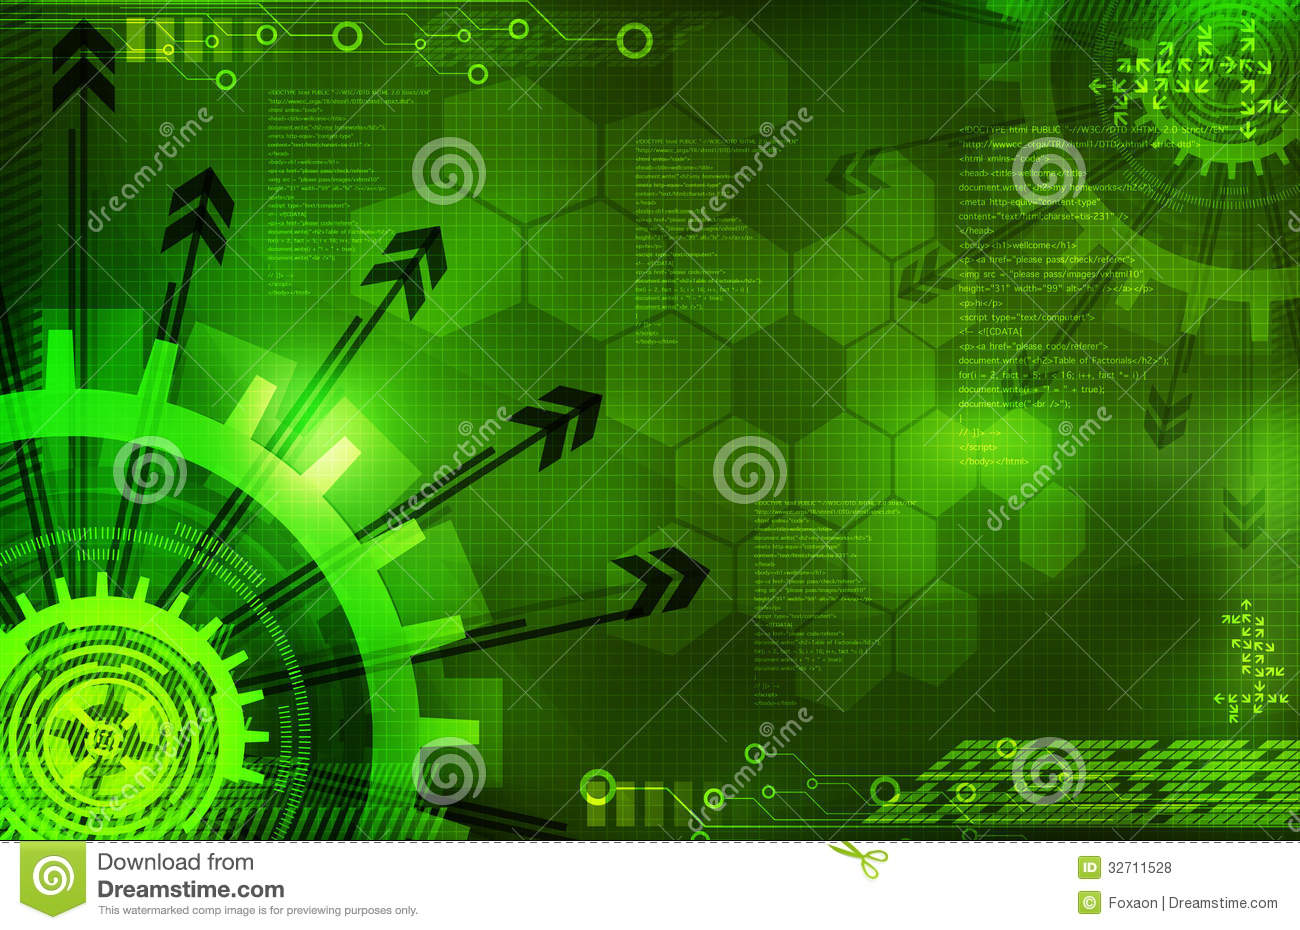 Blue Technology Abstract Background: Abstract Digital Green Background With Arrows Royalty Free